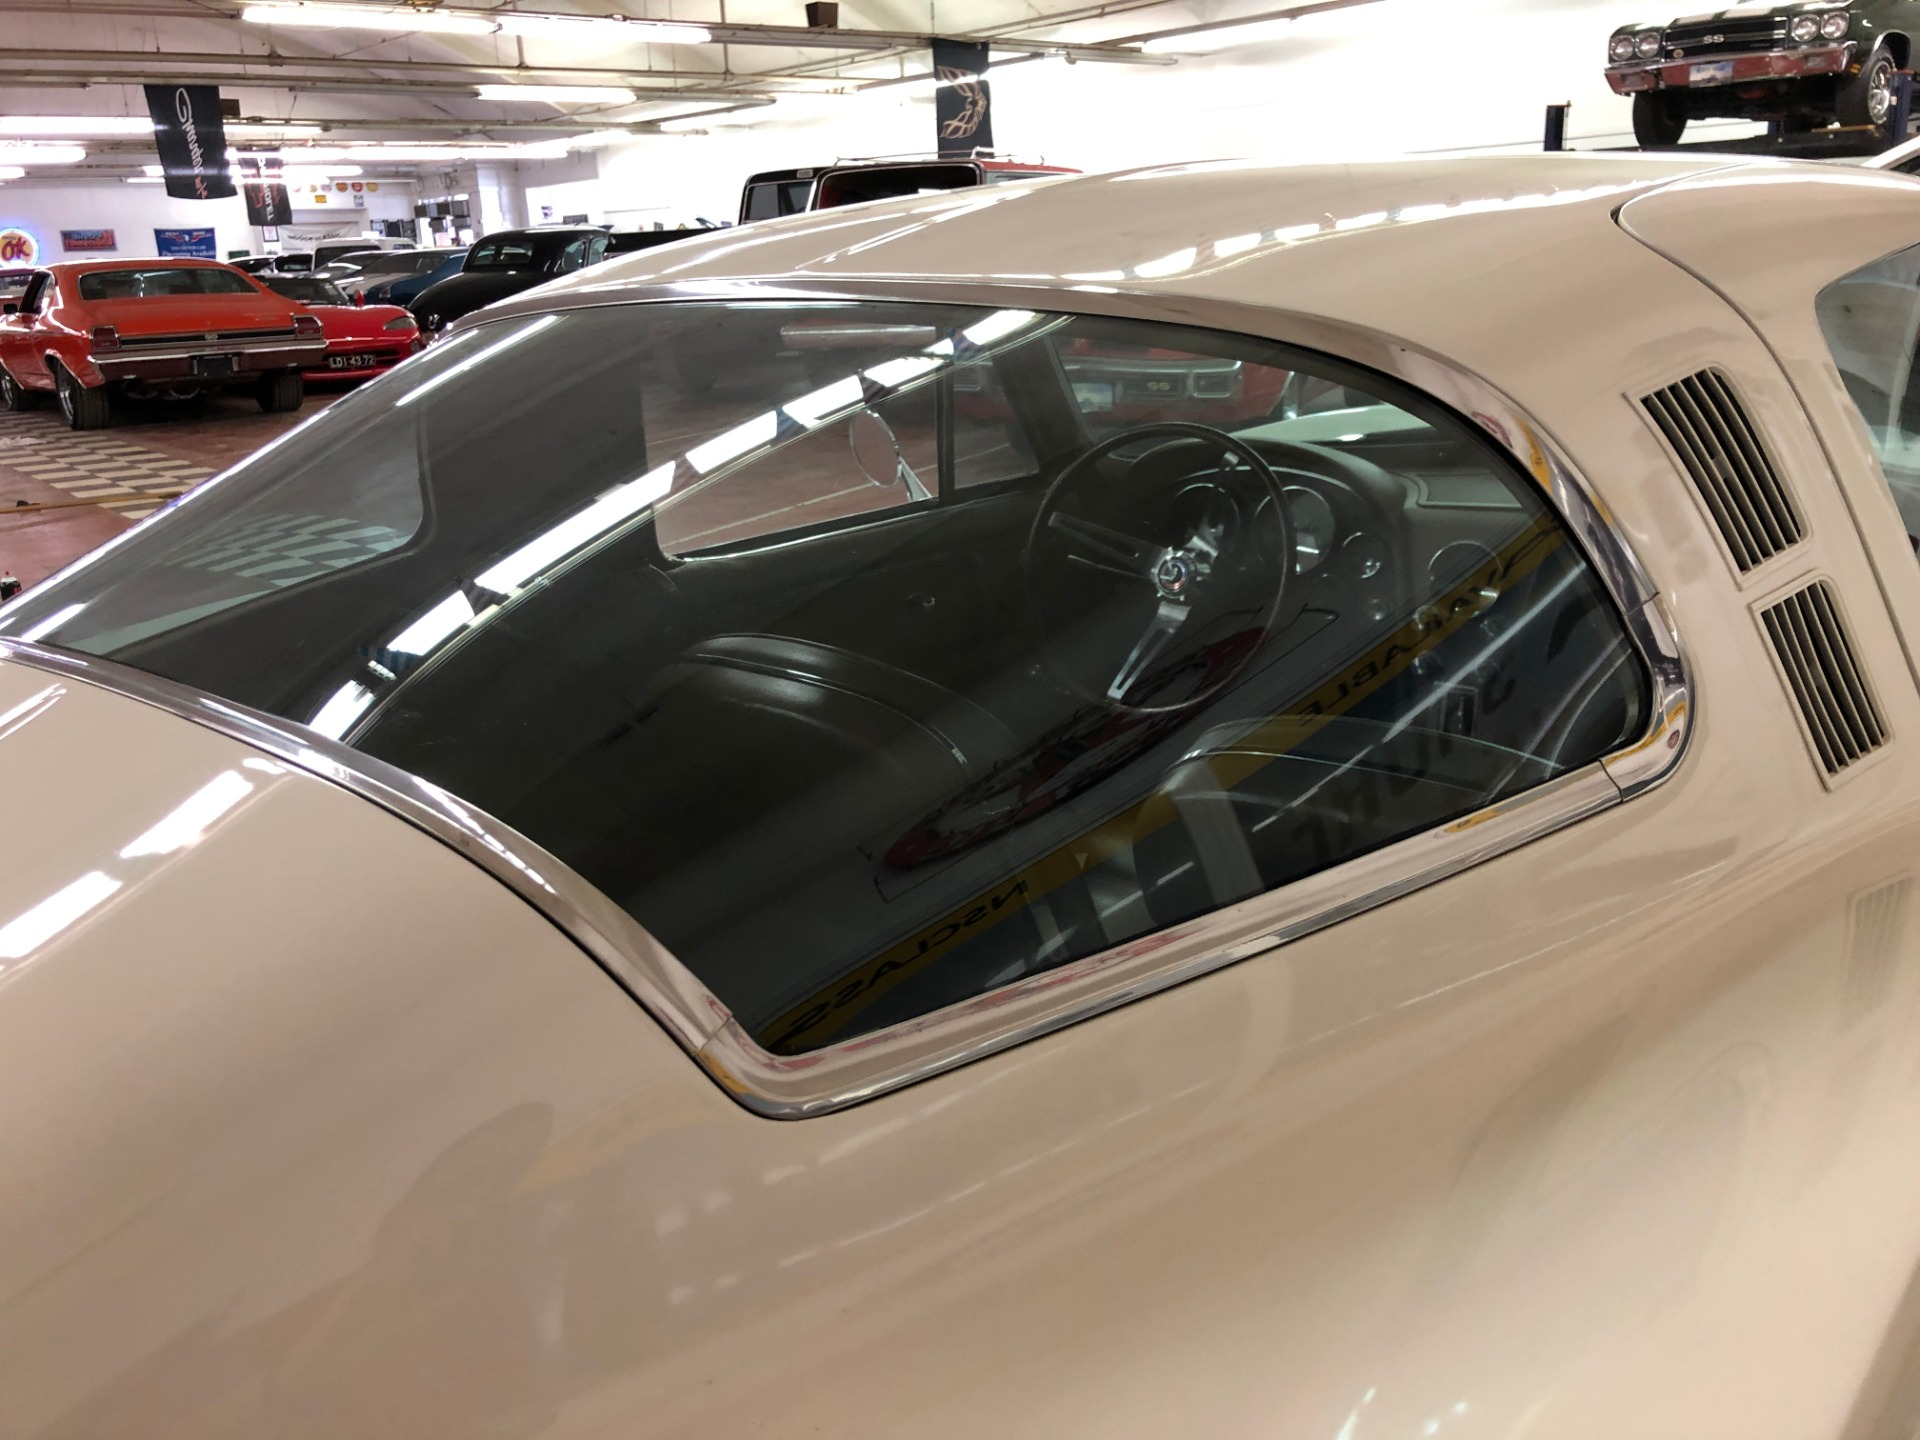 Used 1965 Chevrolet Corvette -DISCOUNT PRICE - ORIGINAL INTERIOR- NUMBERS MATCHING | Mundelein, IL